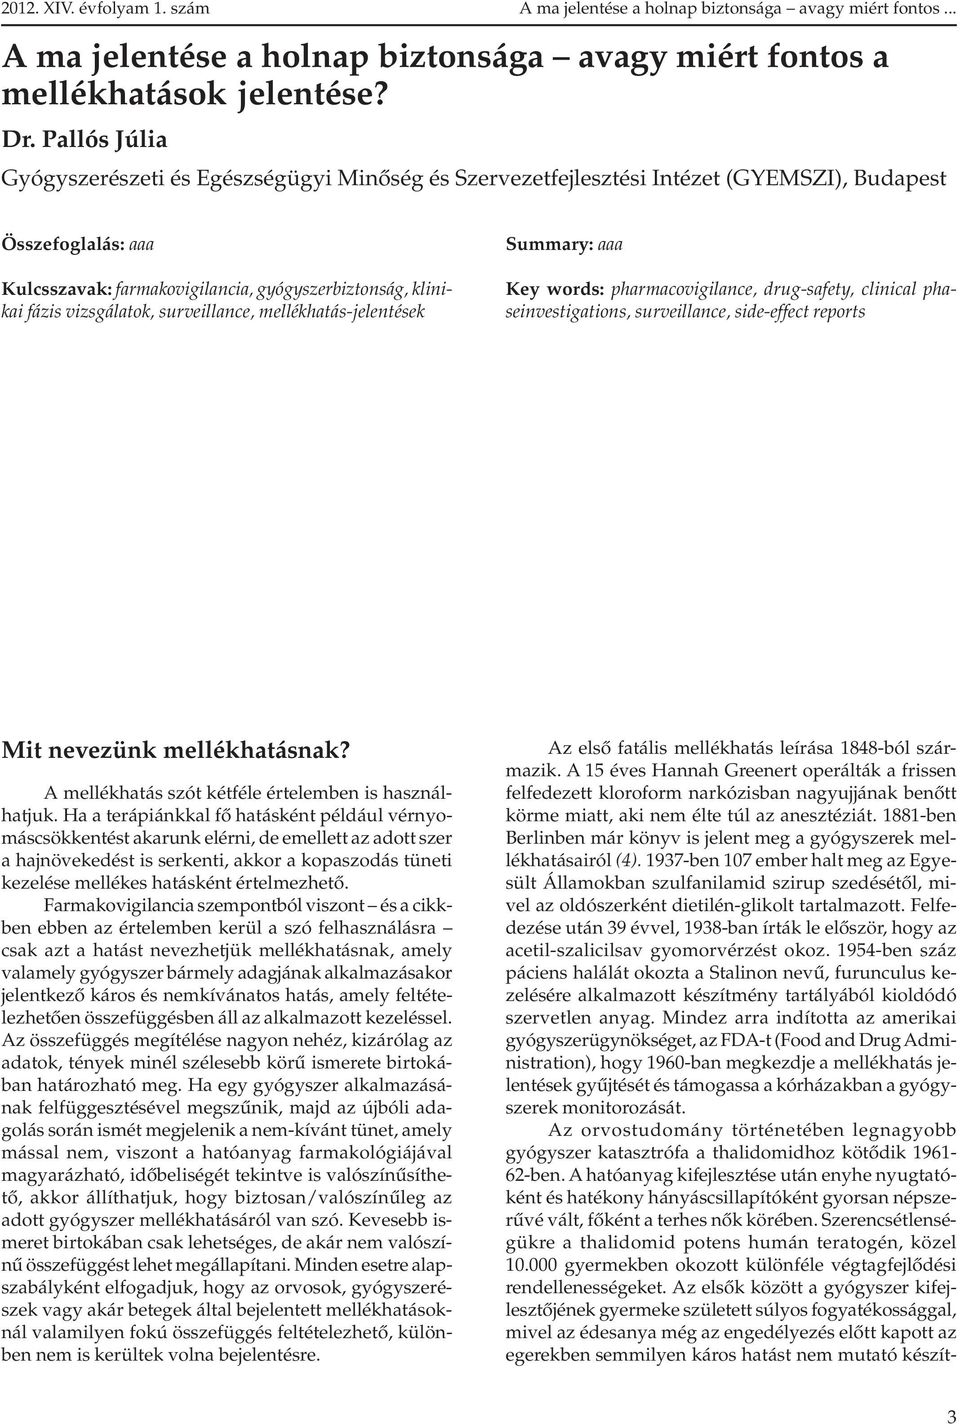 surveillance, mellékhatás-jelentések Summary: aaa Key words: pharmacovigilance, drug-safety, clinical phaseinvestigations, surveillance, side-effect reports Mit nevezünk mellékhatásnak?